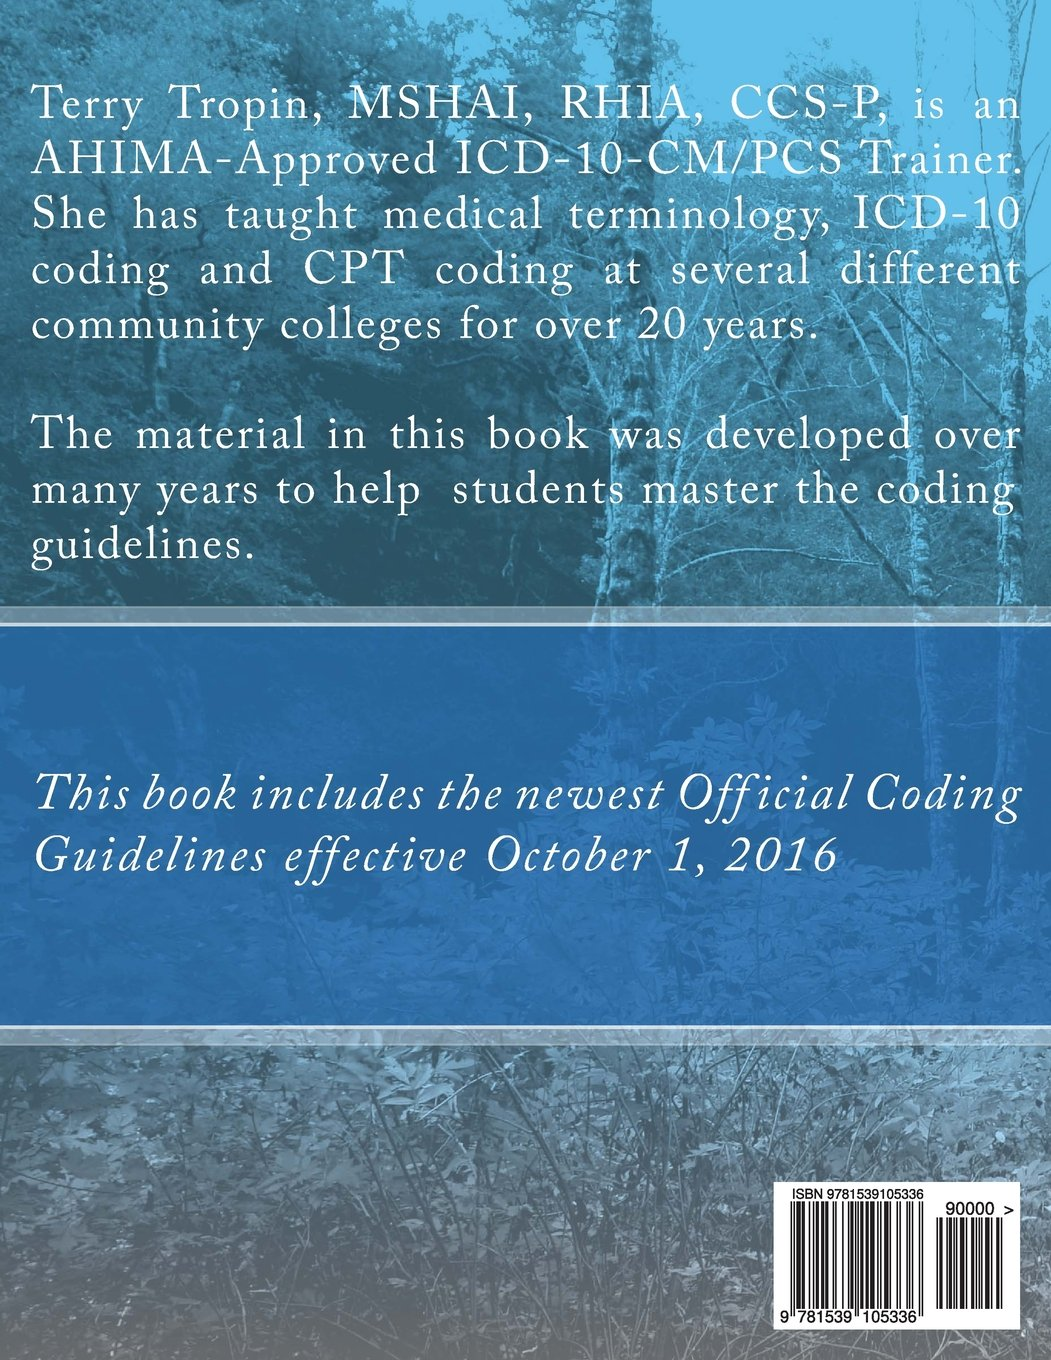 100 tips for icd 10 pcs coding - Amazon Com Icd 10 Cm Coding Guidelines Made Easy 2017 9781539105336 Terry Tropin Books